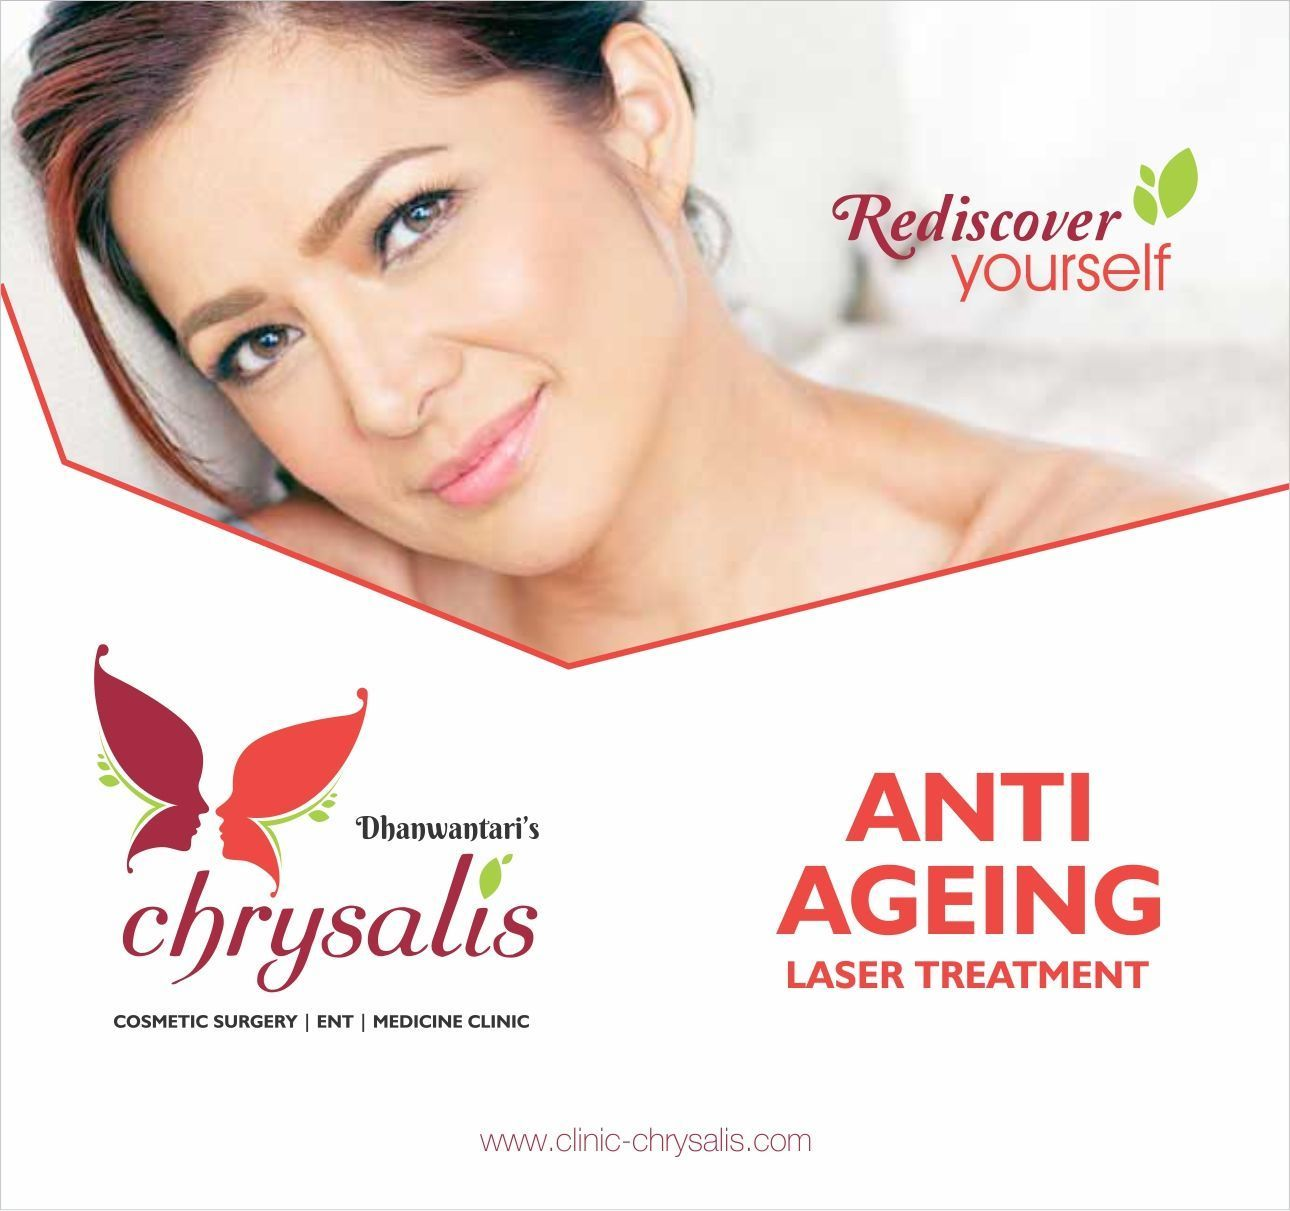 4 Cheap And Easy Cool Tips Anti Aging Foods Clock Skin Care Ads Mary Kay Skin Care Model Posts Skin Care Order Skin Care Moisturizer Anti Aging Skin Products